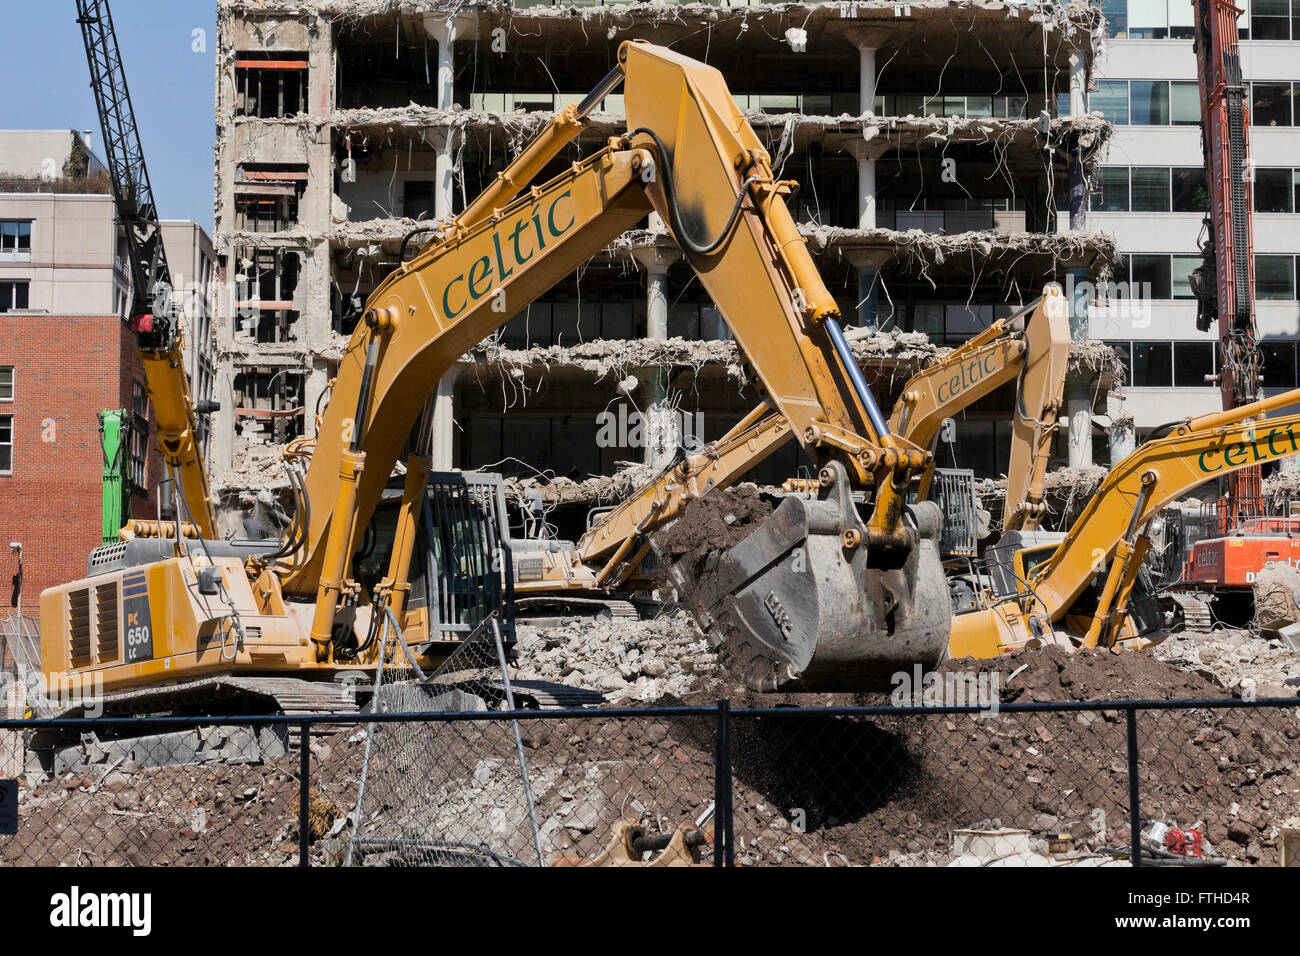 Caterpillar excavator at building demolition site - Washington, DC USA - Stock Image